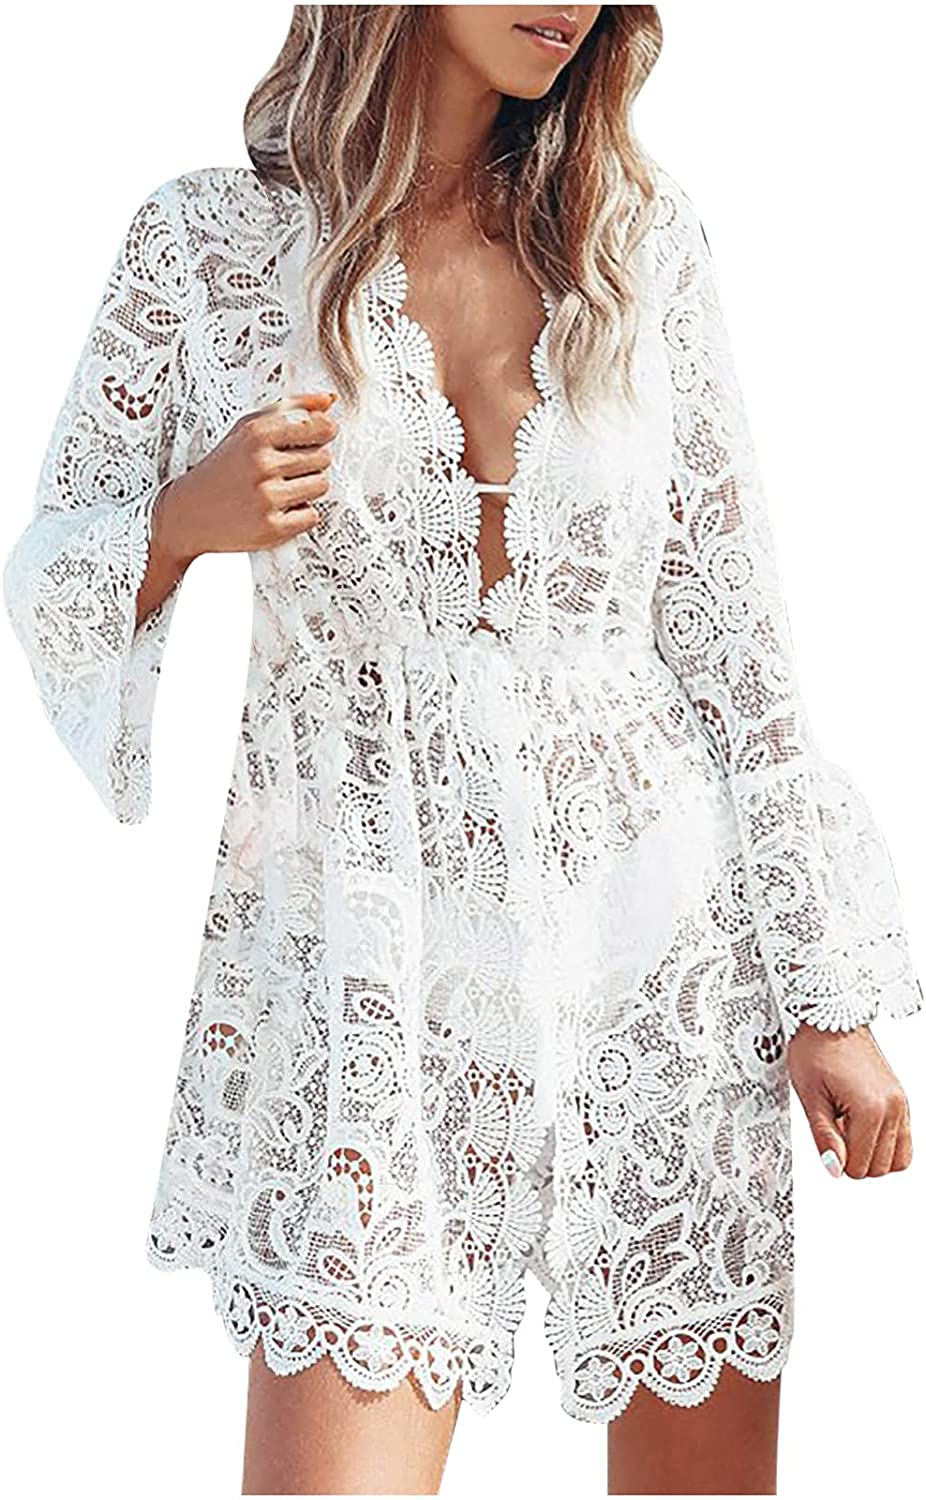 Summer Dresses, Women's Sexy Solid Color Lace Crochet Long Sleeve V-Neck Beach Dress in Summer